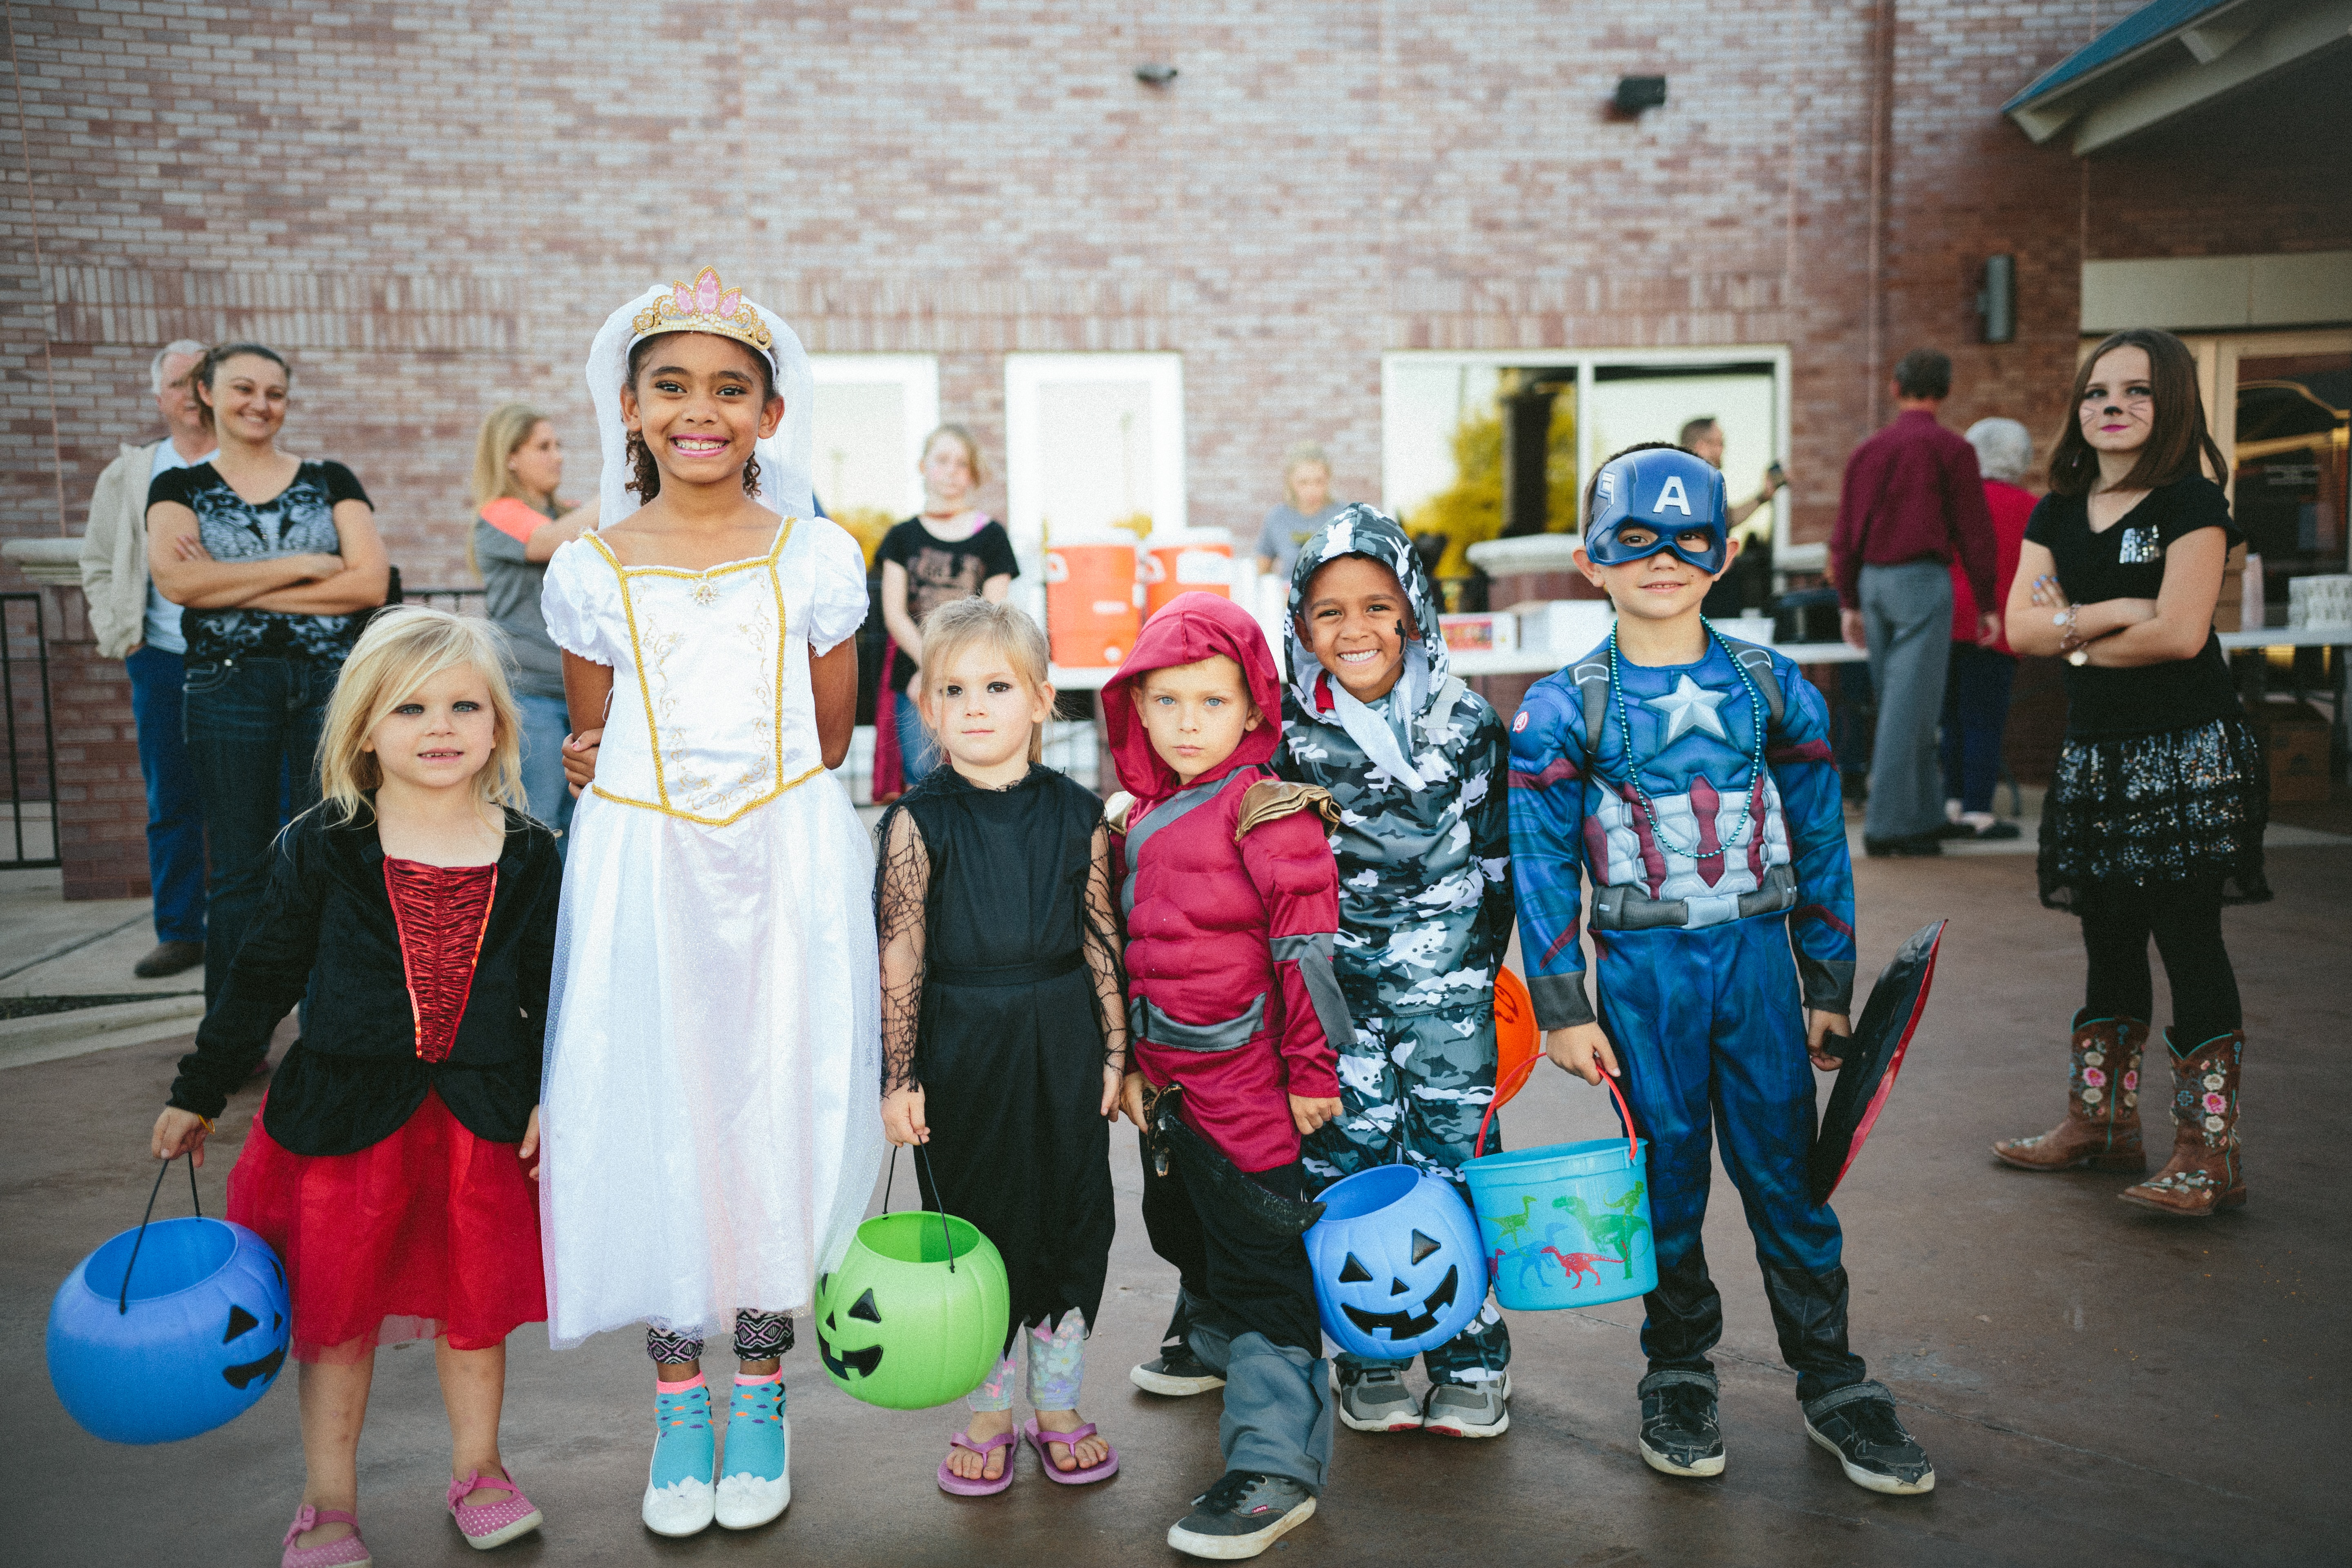 Group of Children Dressed In Halloween Costumes